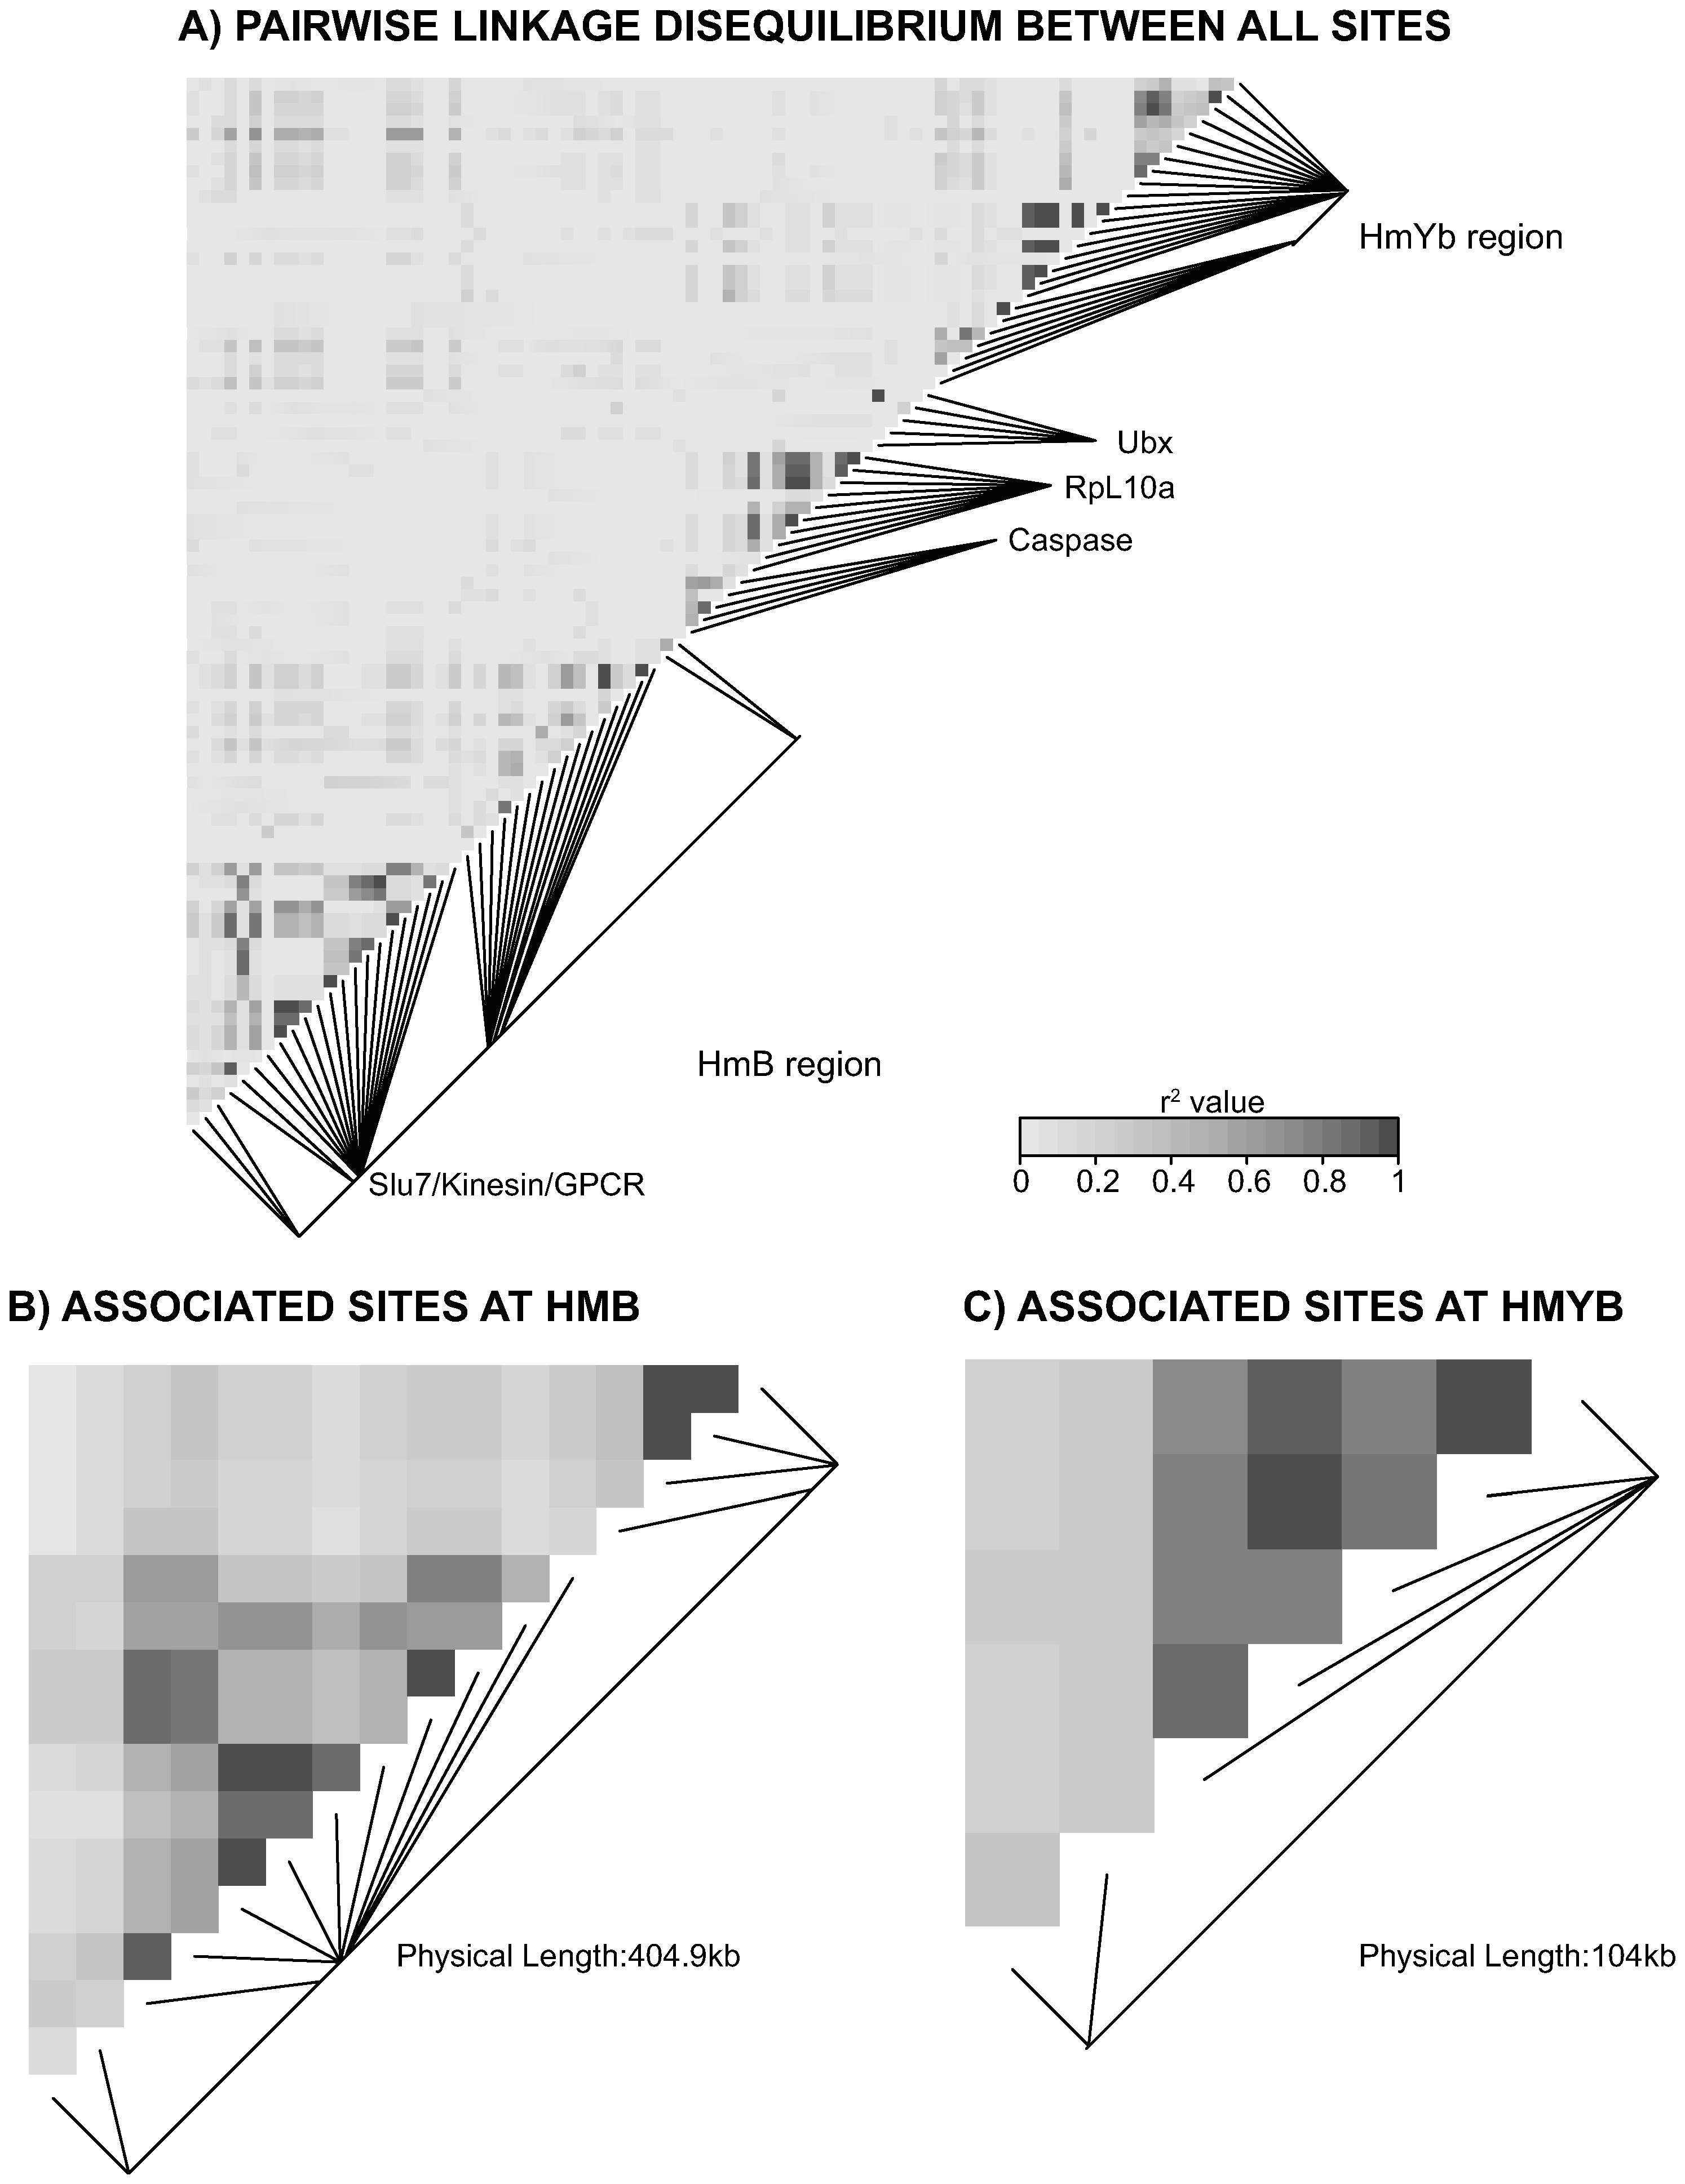 Linkage disequilibrium (LD) for combined <i>H. m. aglaope</i> and <i>H. m. amaryllis</i> populations.